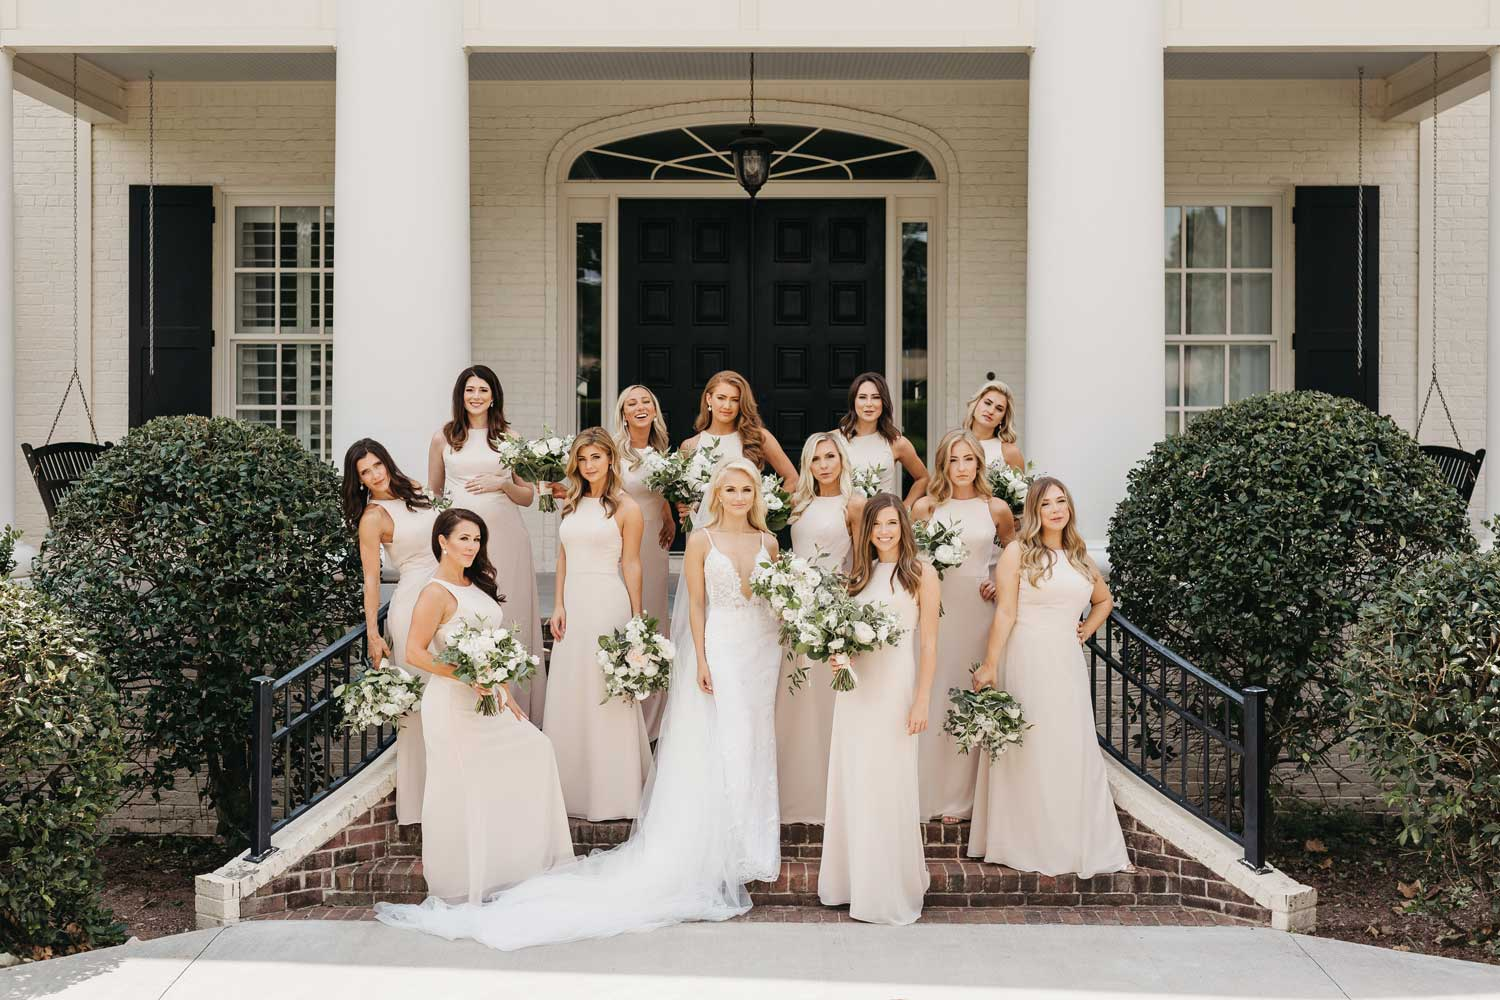 inside weddings winter 2019 issue preview pretty bride and bridesmaids savvy shields miss america